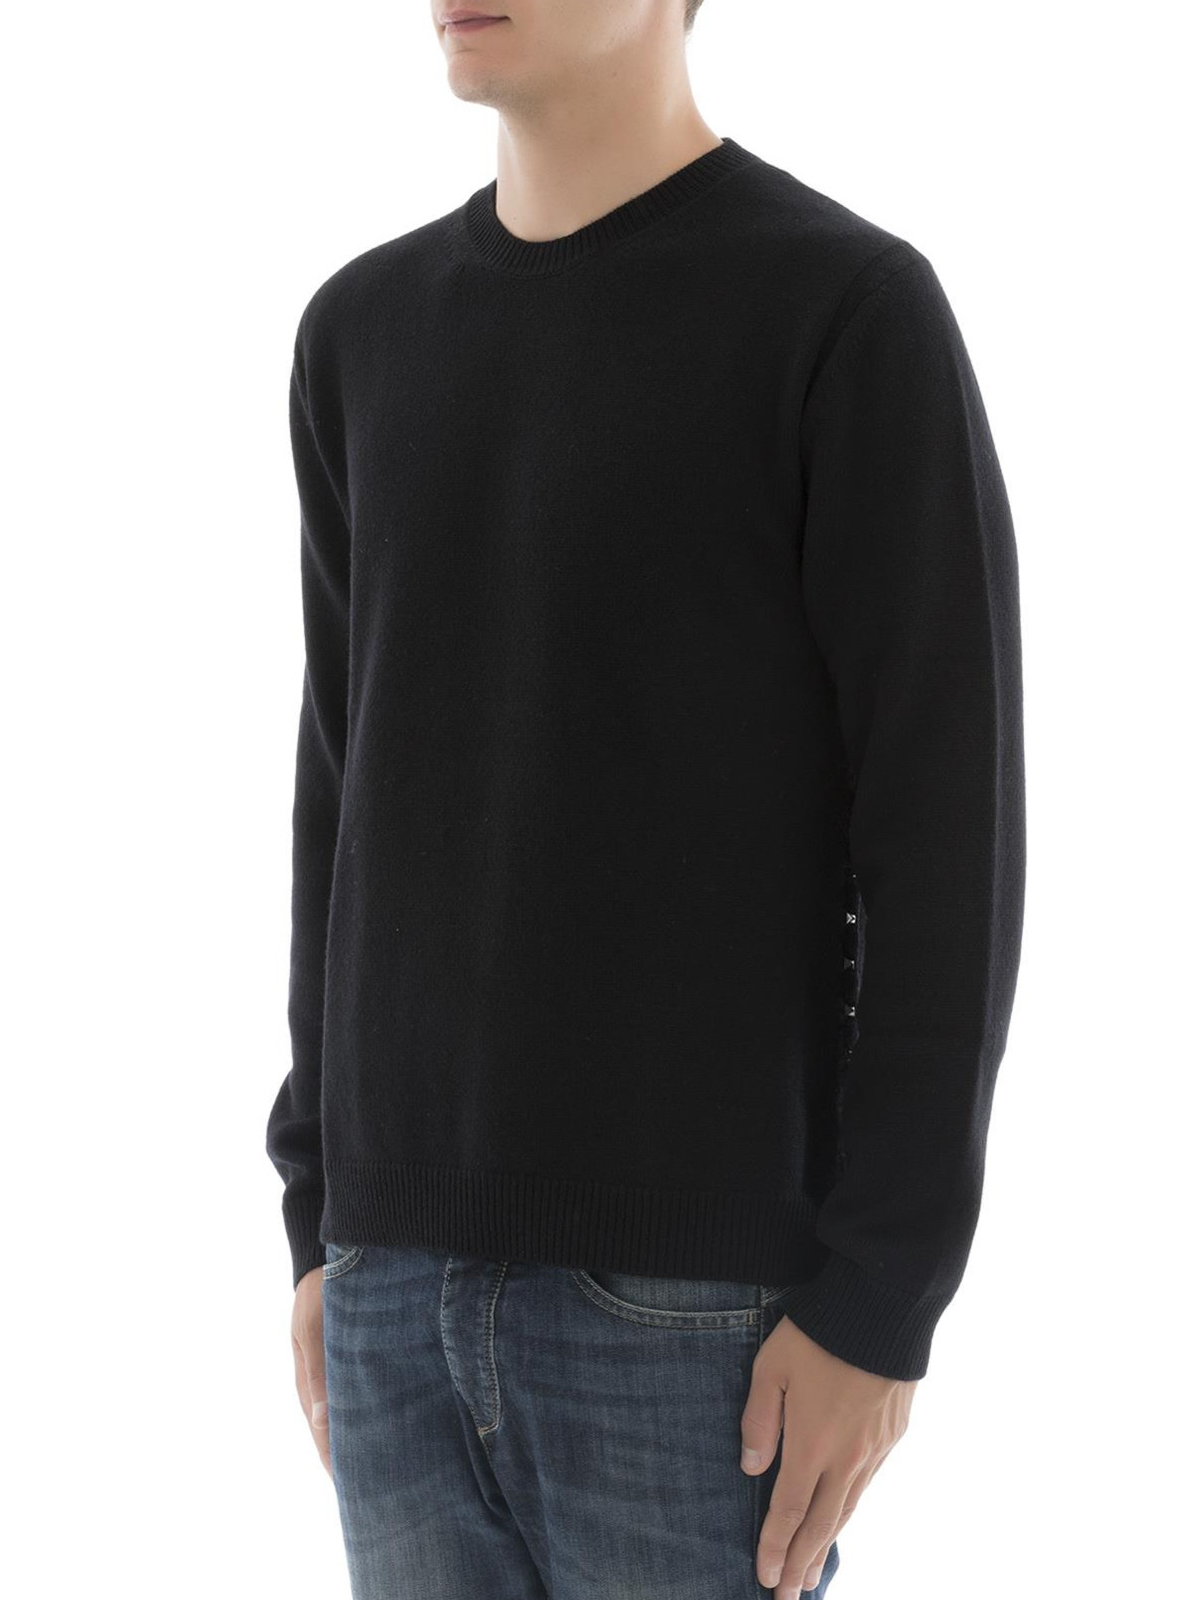 Visit Cheap Online 2018 Newest Online cashmere Rockstud jumper - Black Valentino Sale Looking For Outlet Pre Order Discount Big Discount 9buUYiV